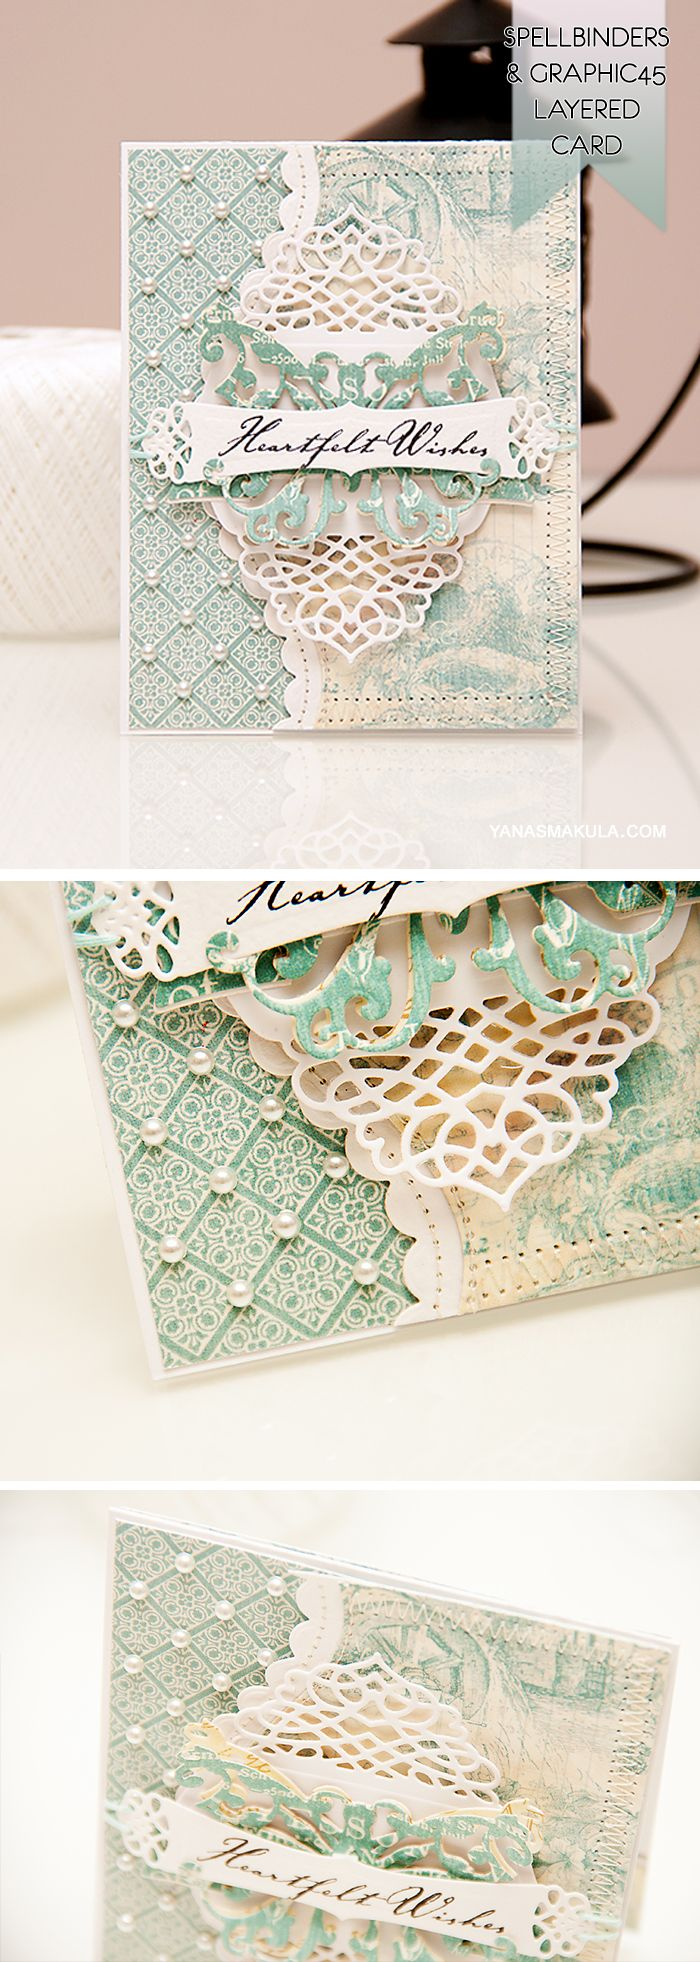 Create an elegant layered Heartfelt Wishes card using dies from Spellbinders and Papers from Graphic 45. For a video tutorial & details, please click here http://www.yanasmakula.com/?p=43887